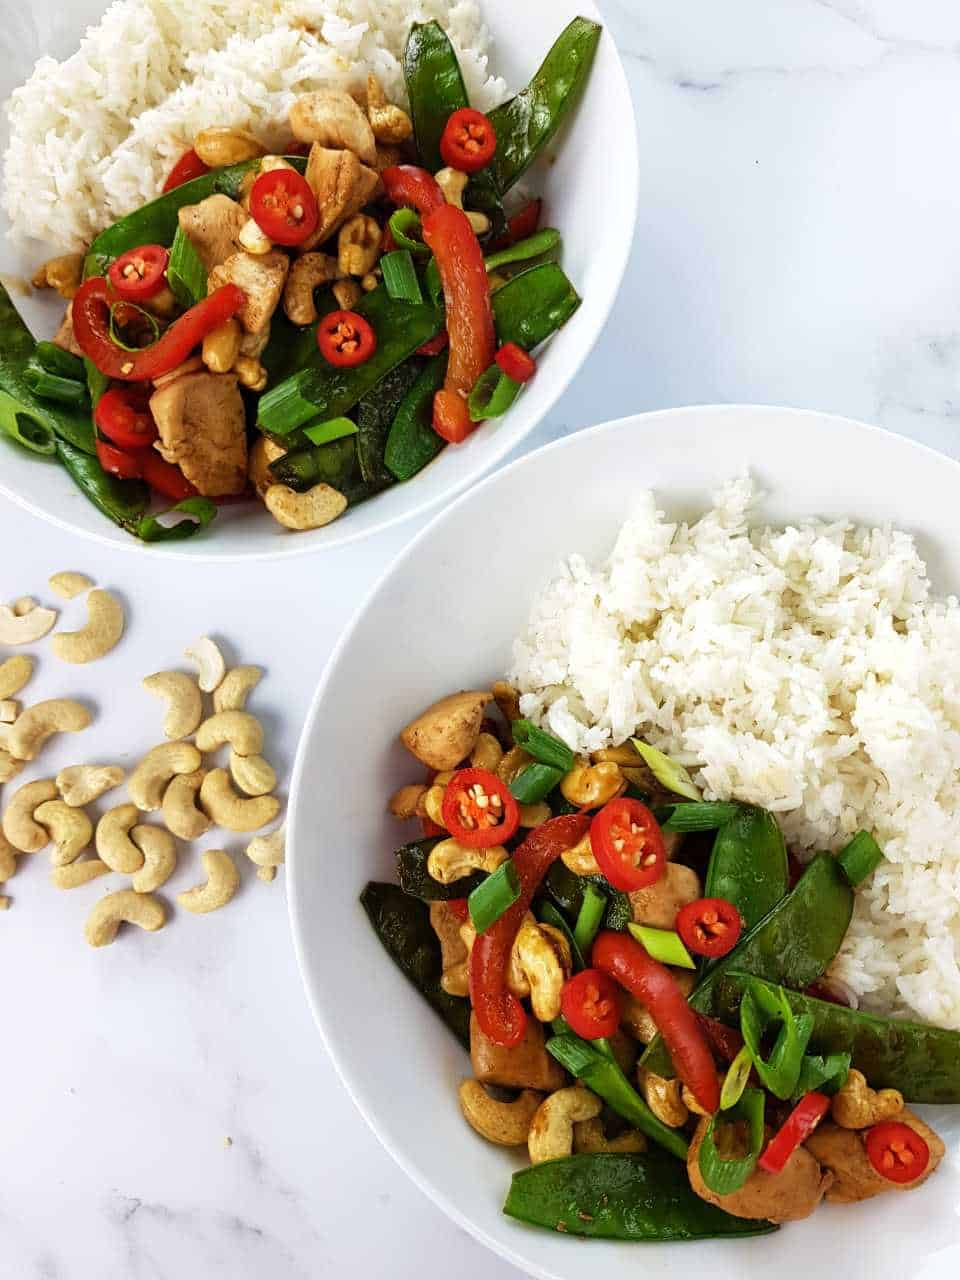 Chicken and cashew stir fry with rice in white bowls on a marble table.